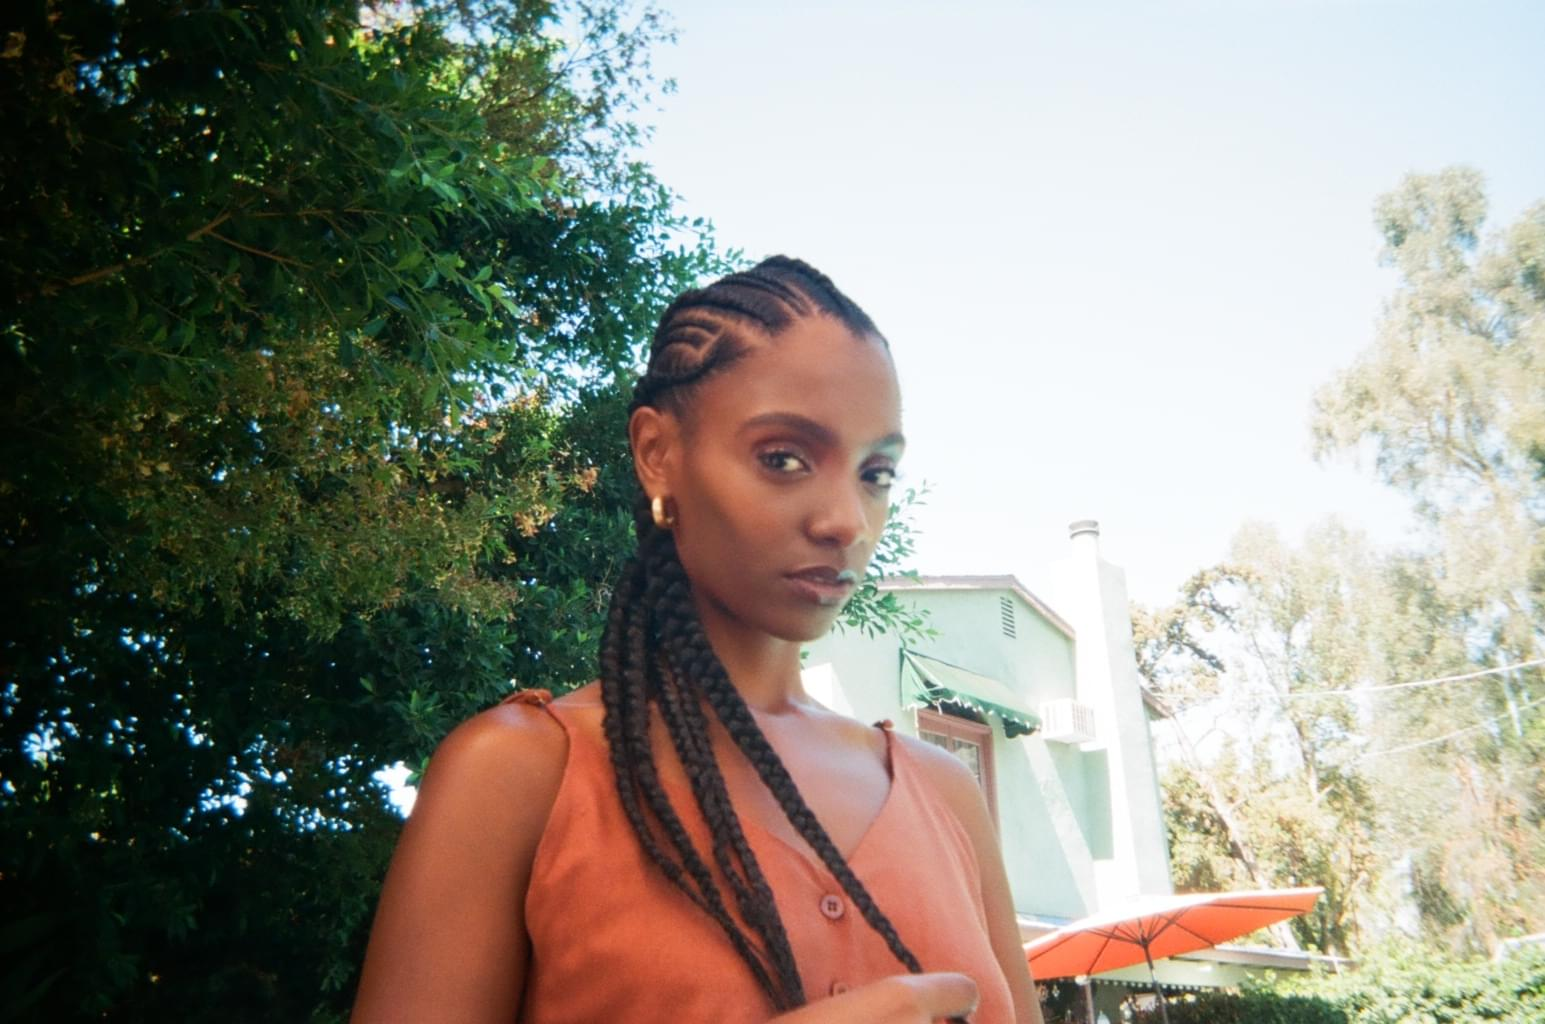 Mereba Drops Debut Album 'The Jungle Is The Only Way Out' [LISTEN]